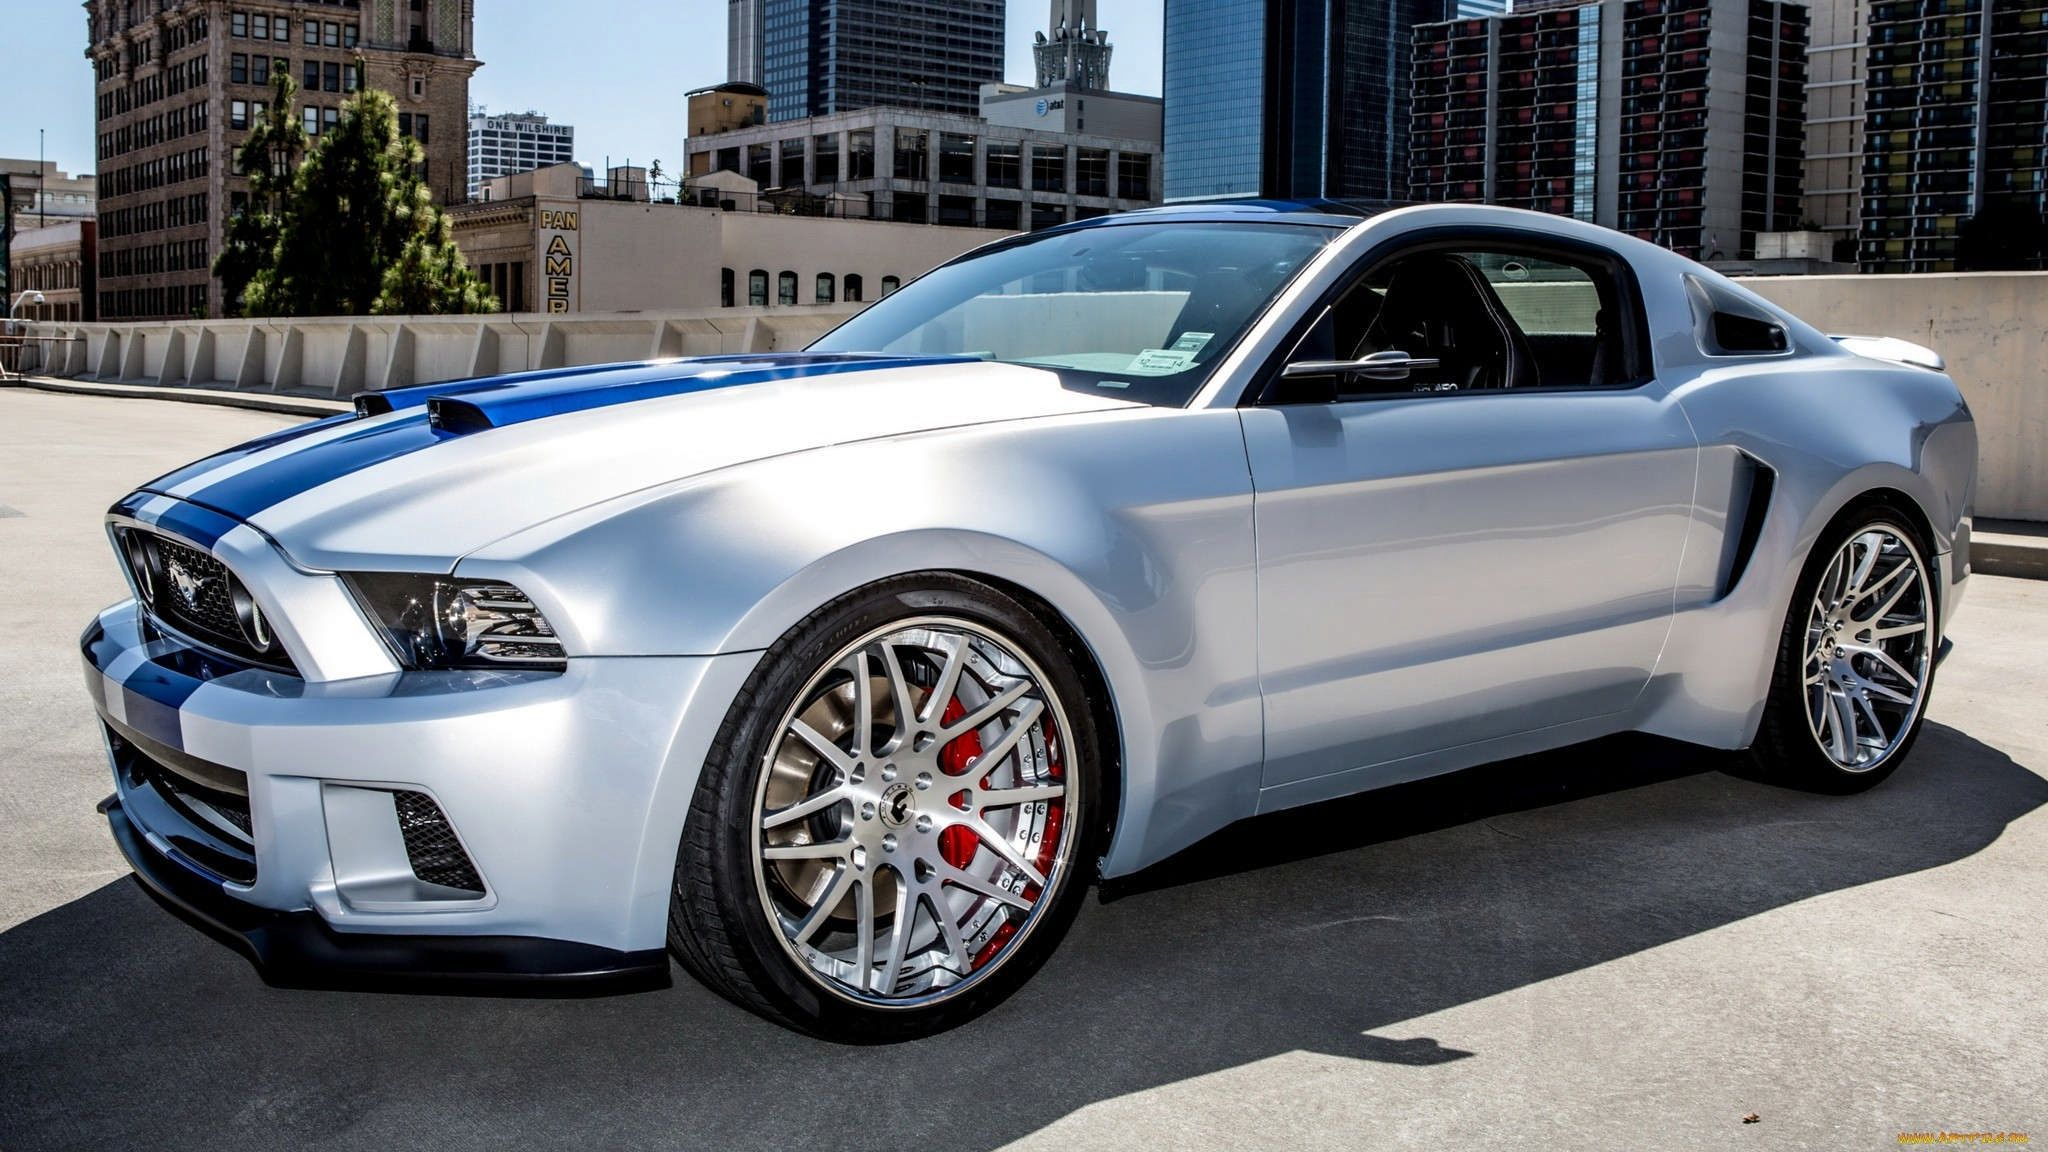 Ford Mustang Muscle Car Shelby Gt500 Gt 500